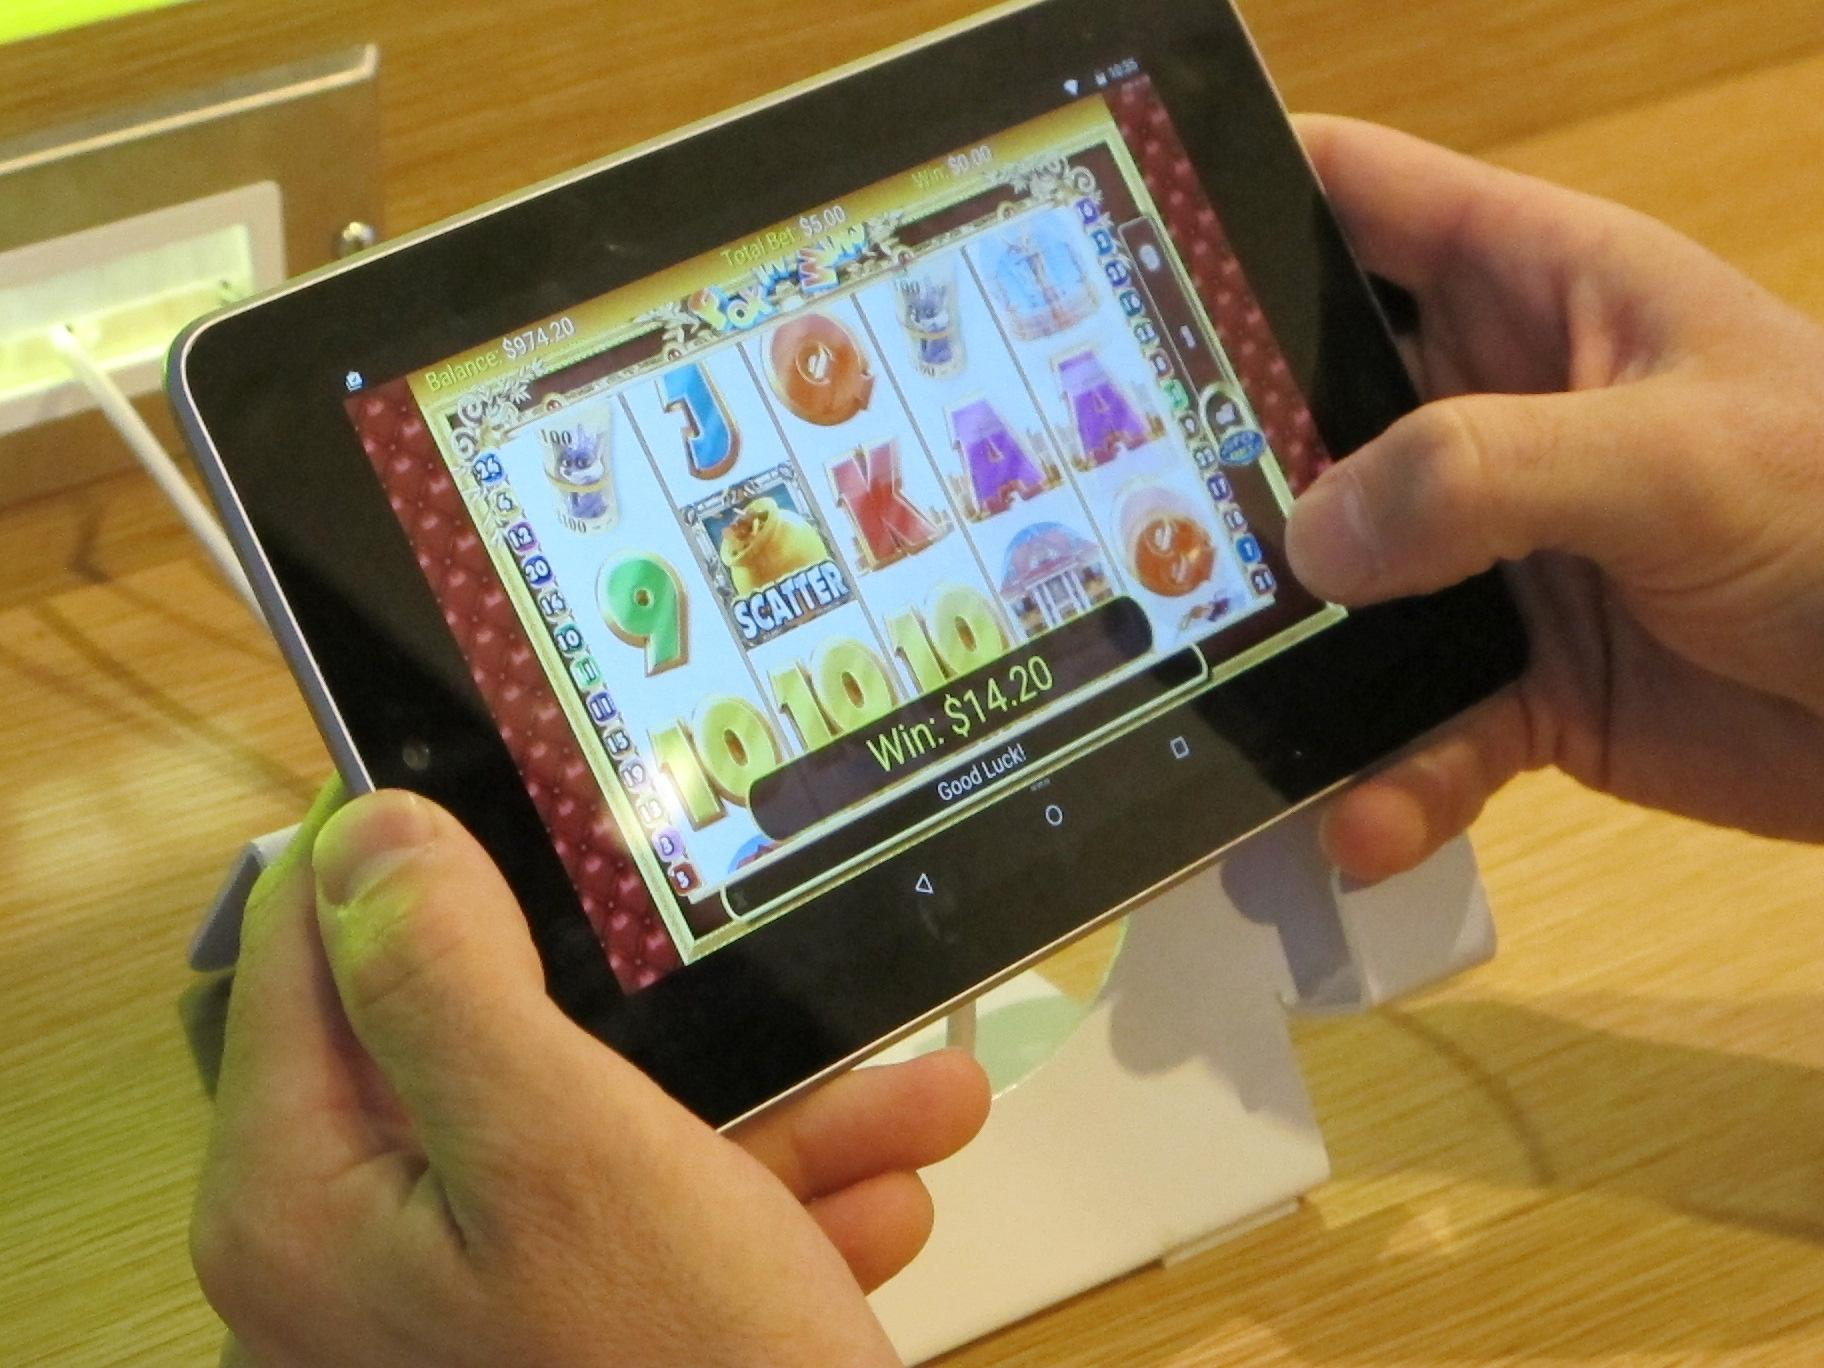 Resorts online lounge takes mystery out of Internet gambling